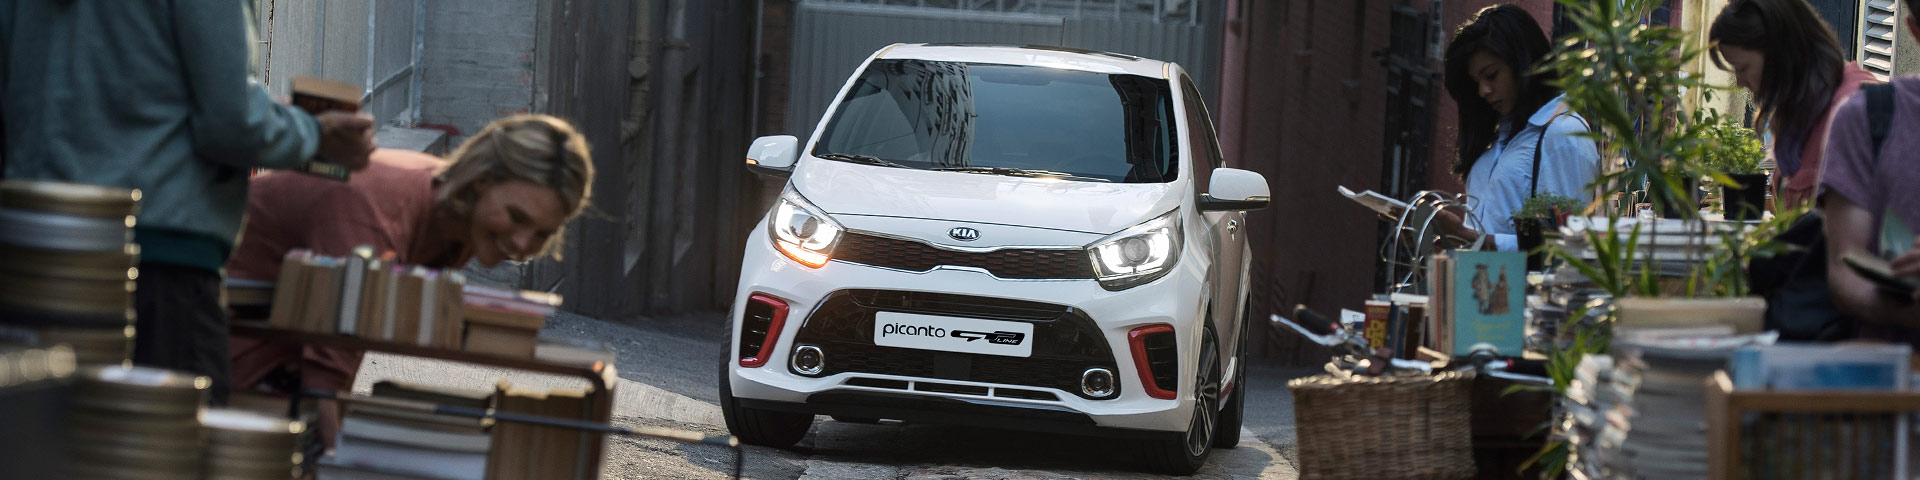 Kia reviews / Kia ervaringen